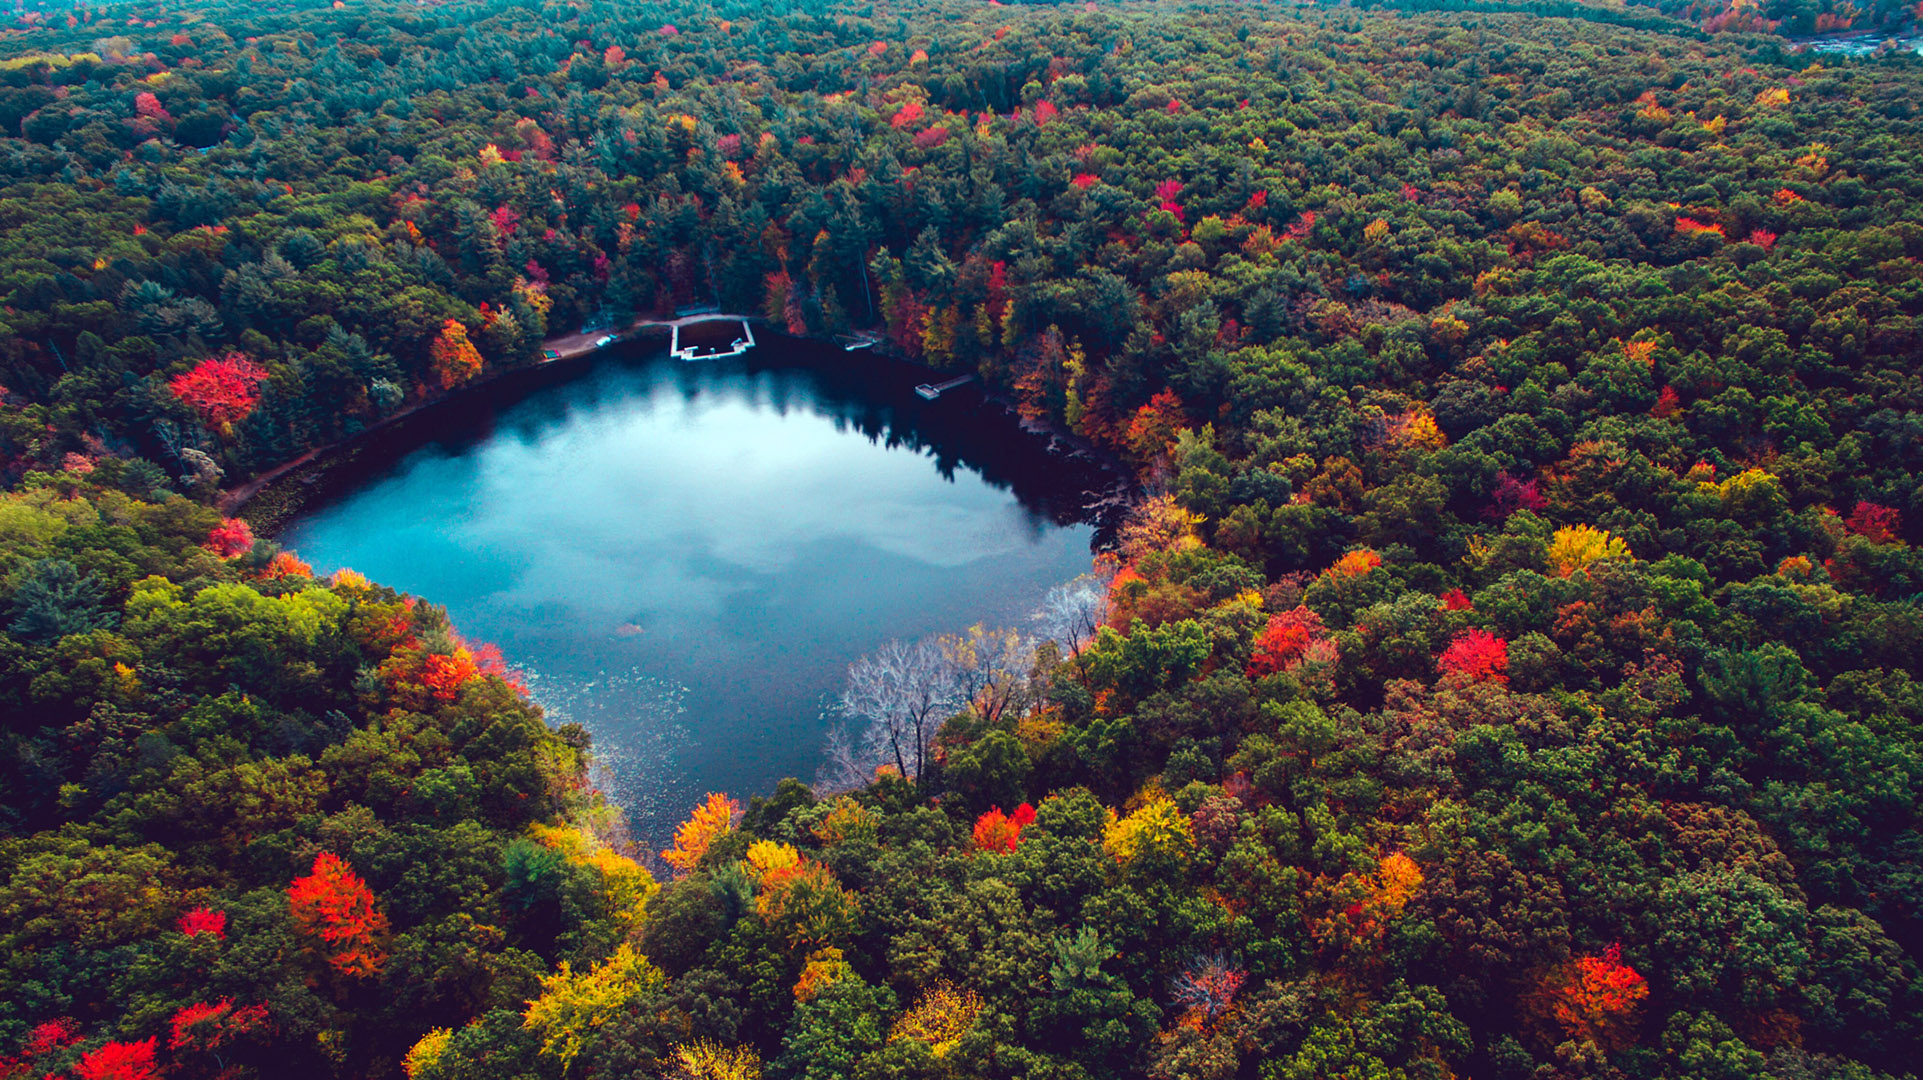 Fall Iphone Wallpaper Pinterest Lake In Autumn Forest Hd Wallpaper Background Image